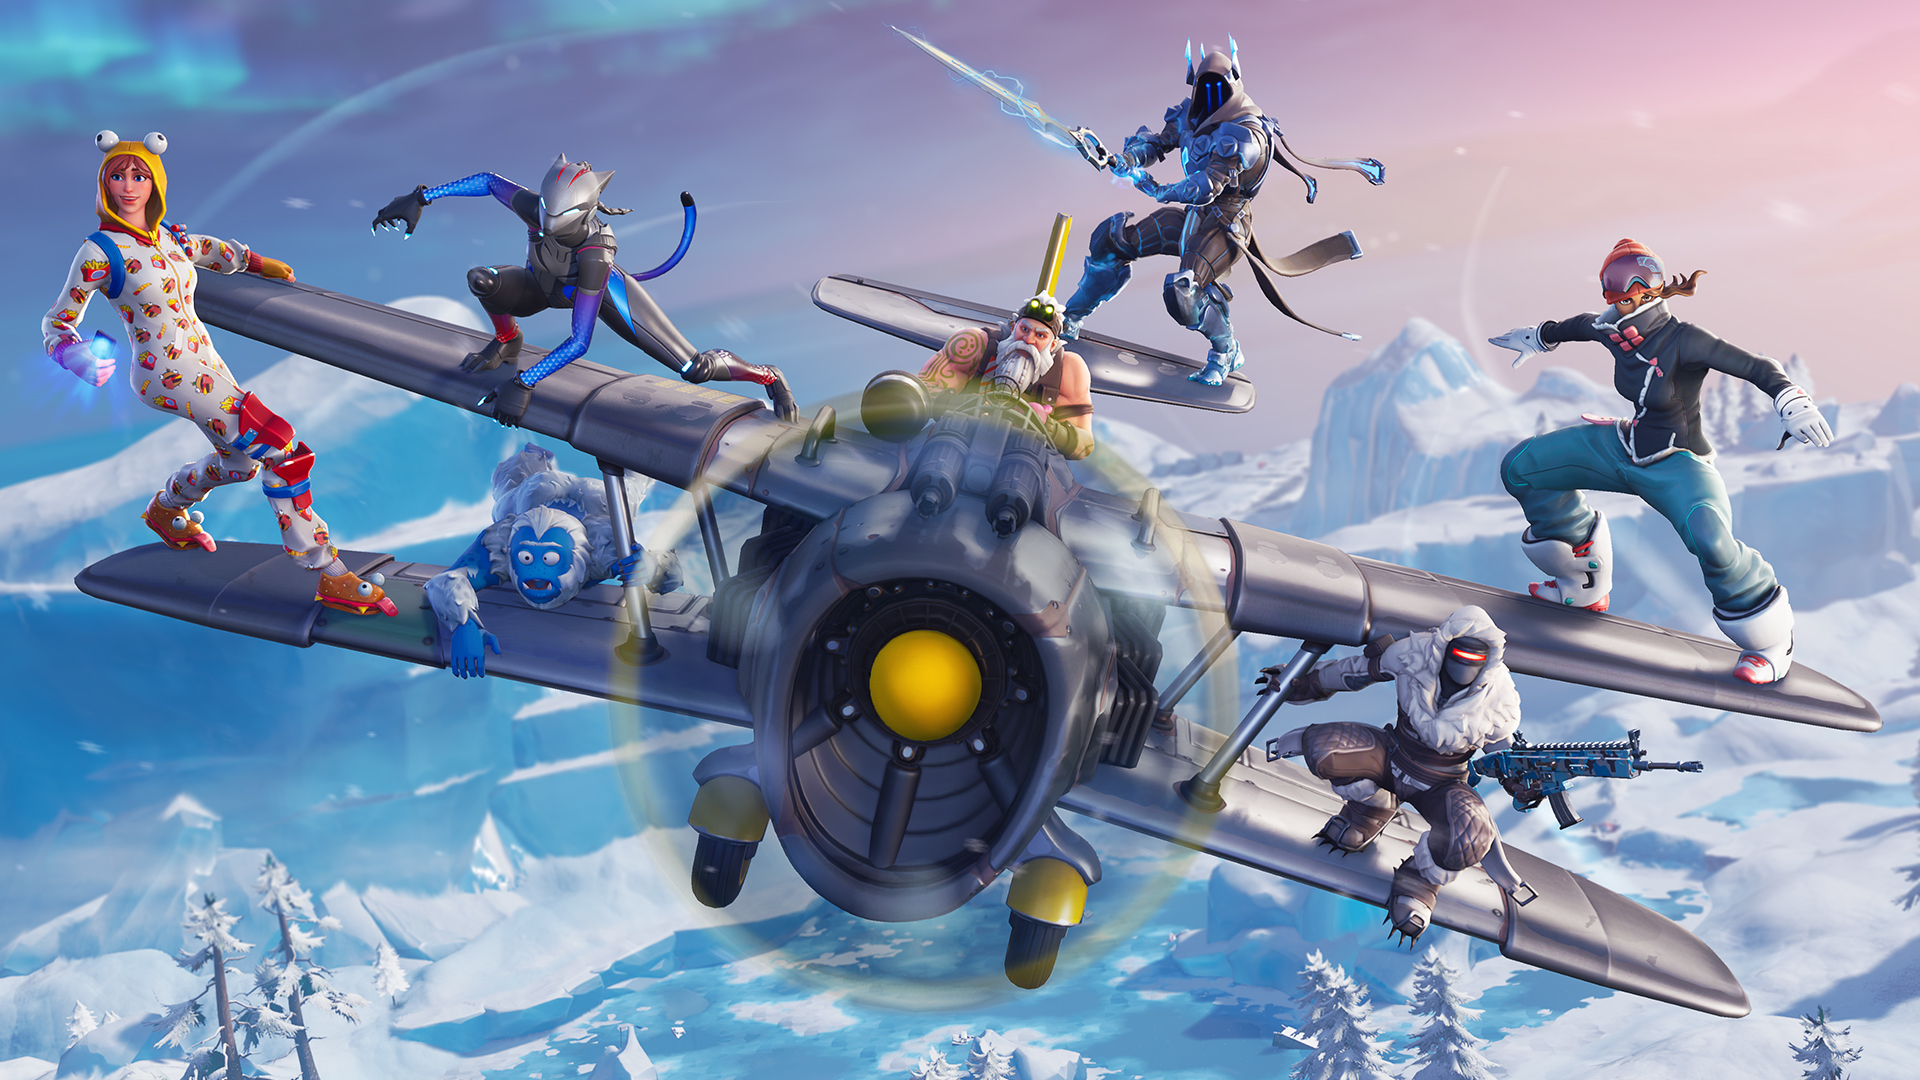 Days of Fortnite Brings Winter Fun to Everyone Starting December 19th